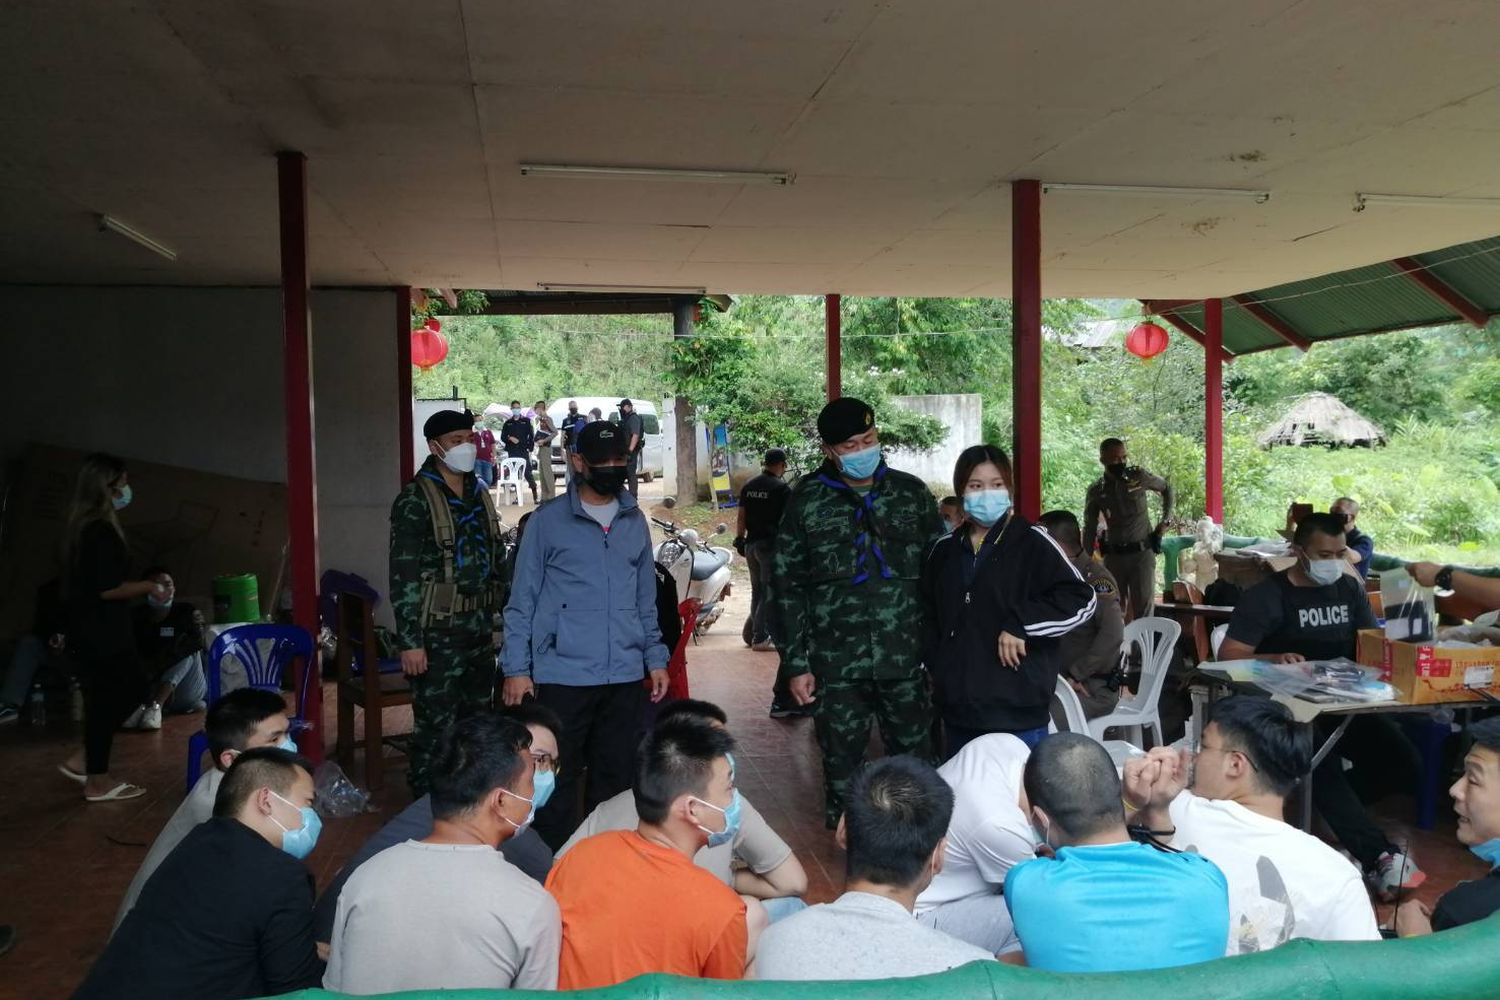 Soldiers raid gambling operation, arrest 53 Chinese